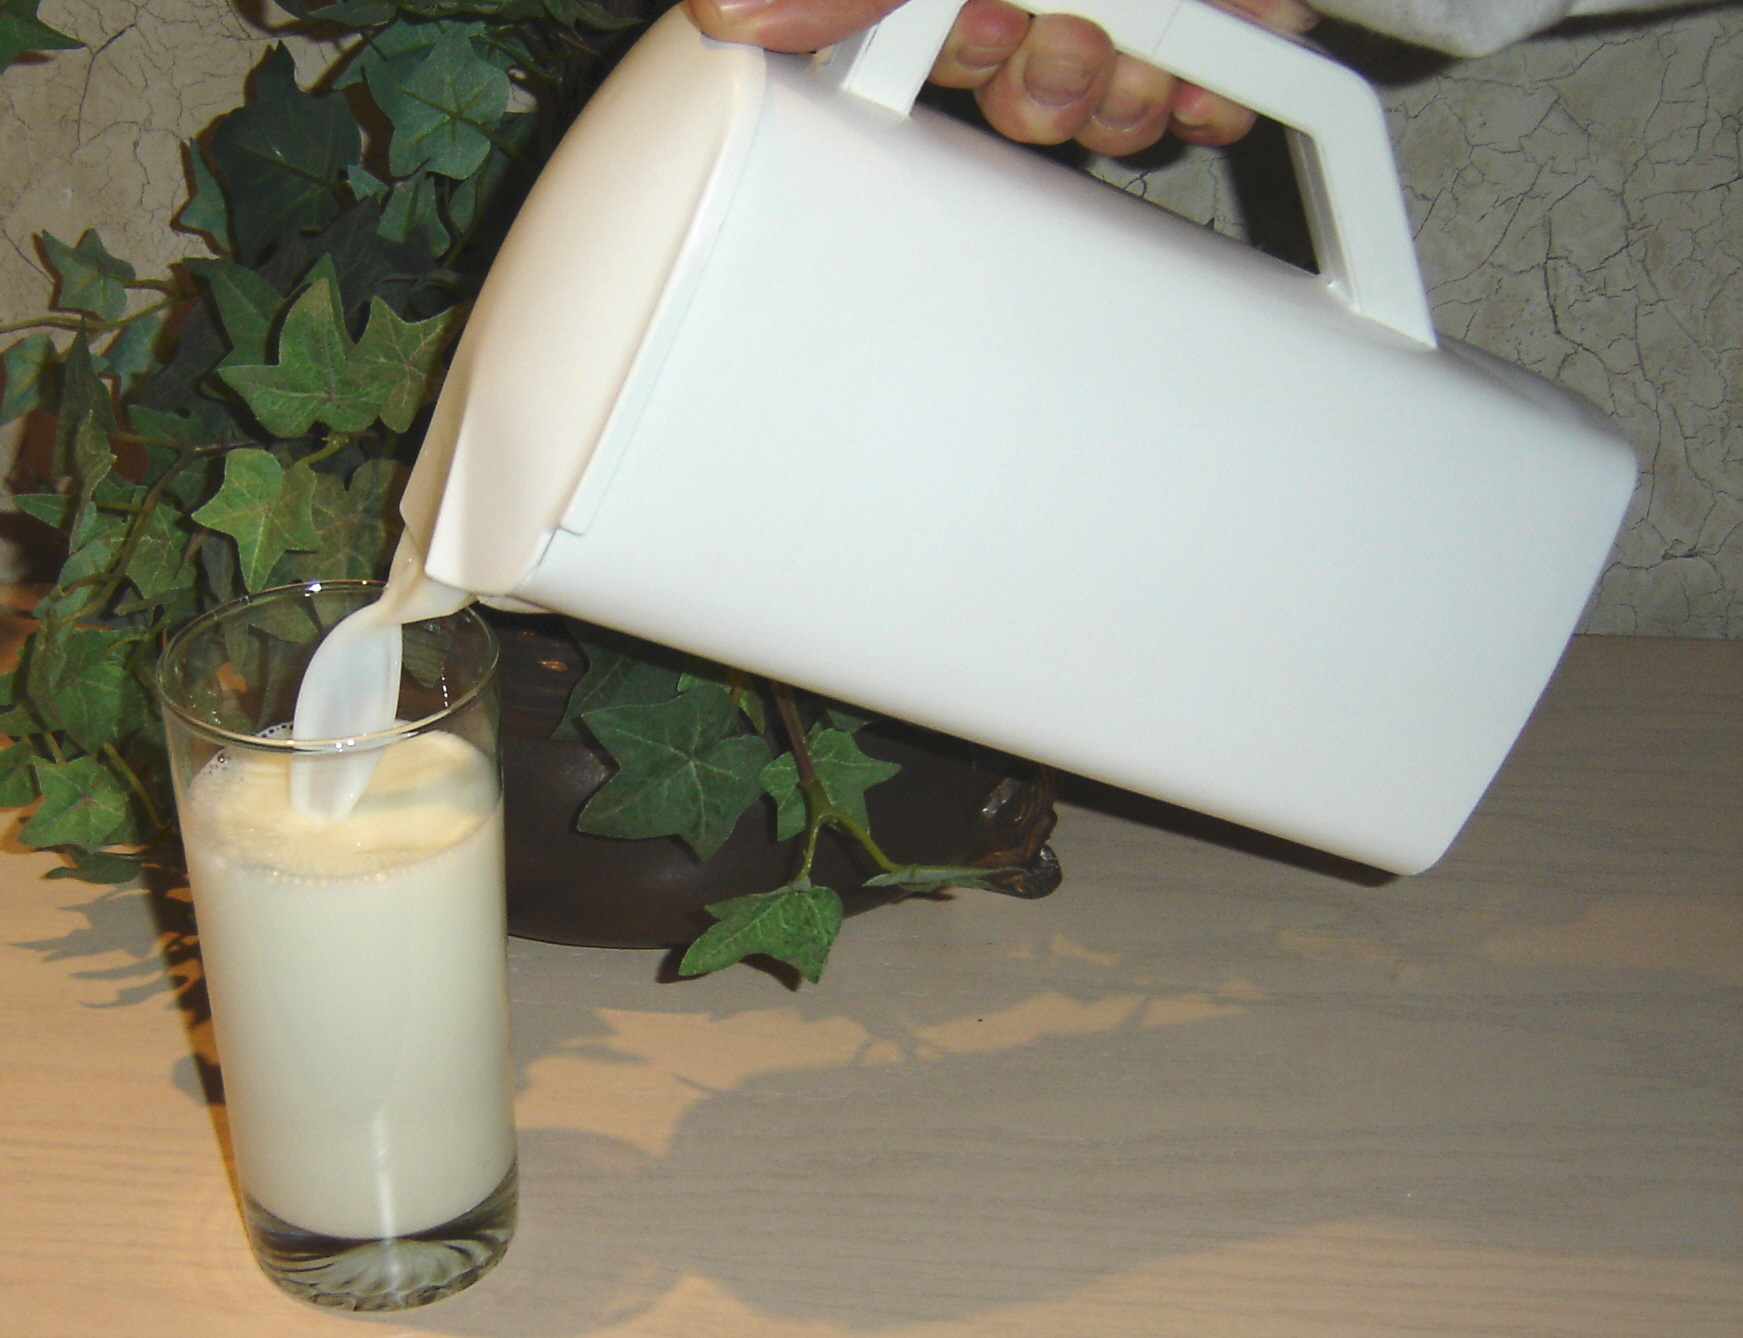 http://upload.wikimedia.org/wikipedia/commons/a/a8/Milk_Pitcher_With_Lid.jpg